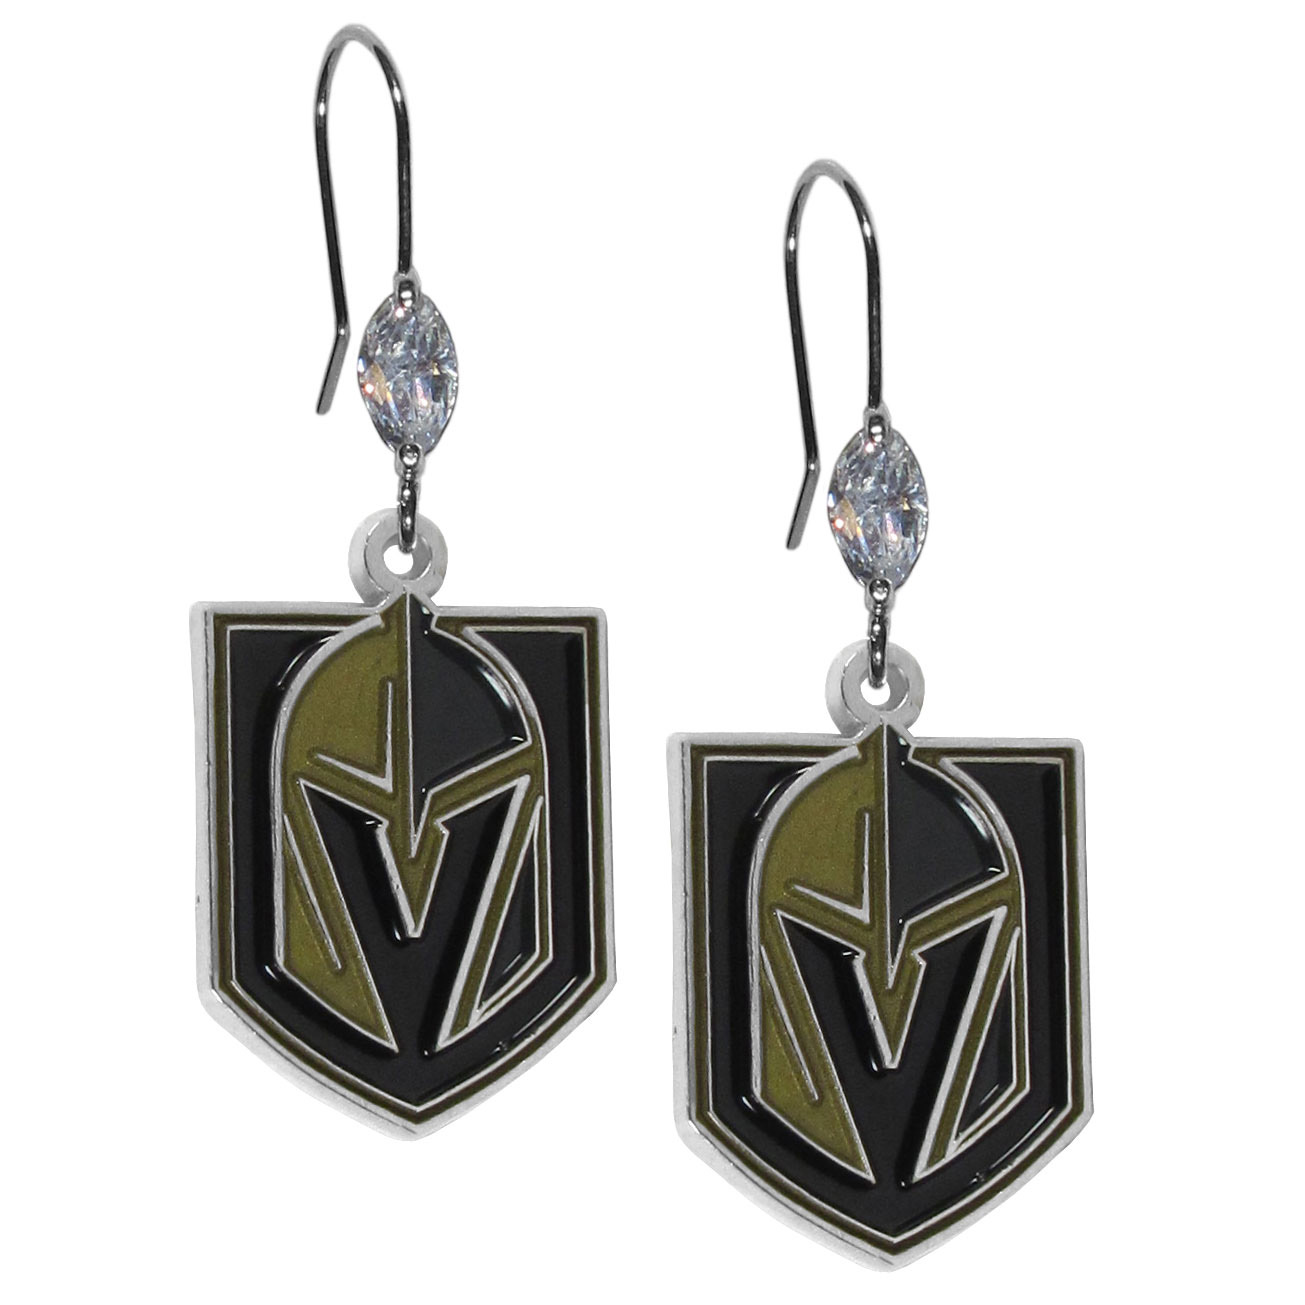 Las Vegas Golden Knights® Crystal Dangle Earrings - Our crystal dangle earrings are the perfect accessory for your game day outfit! The earrings are approximately 1.5 inches long and feature an iridescent crystal bead and nickel free chrome Las Vegas Golden Knights® charm on nickel free, hypoallergenic fishhook posts.